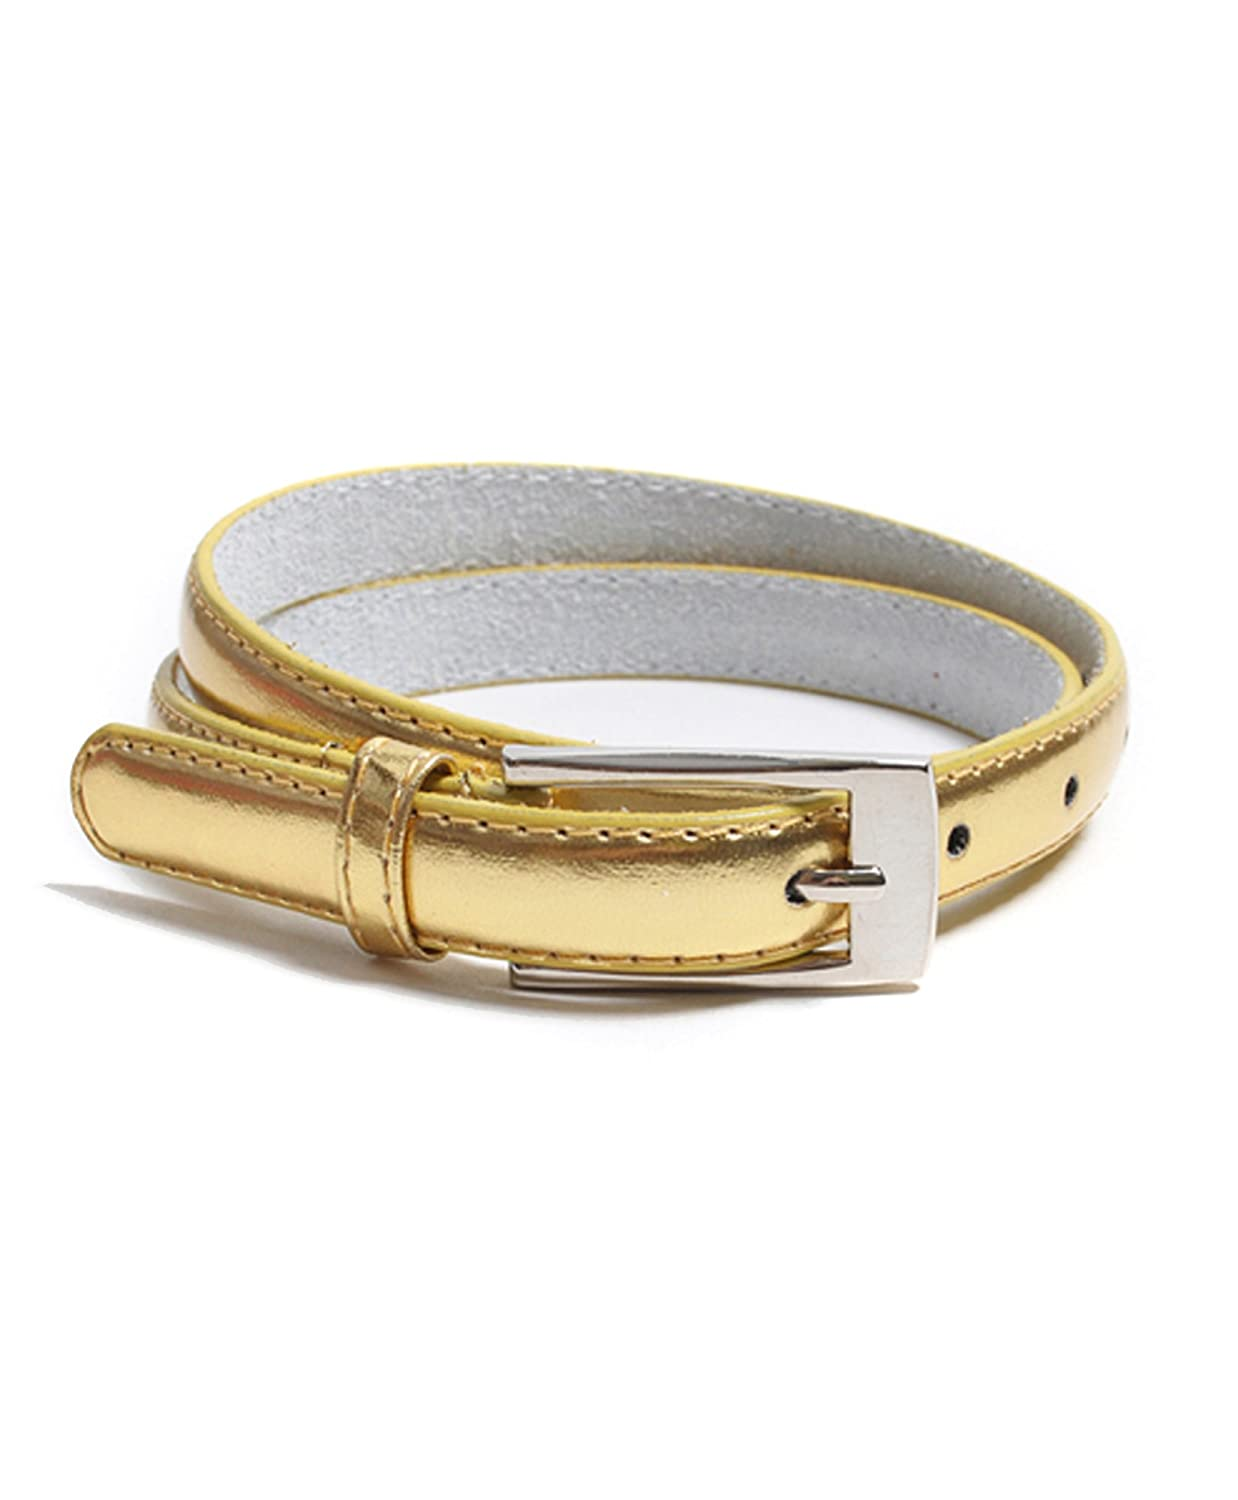 "Solid Color Leather Adjustable Skinny Belt, Large (35""-39""), Gold"